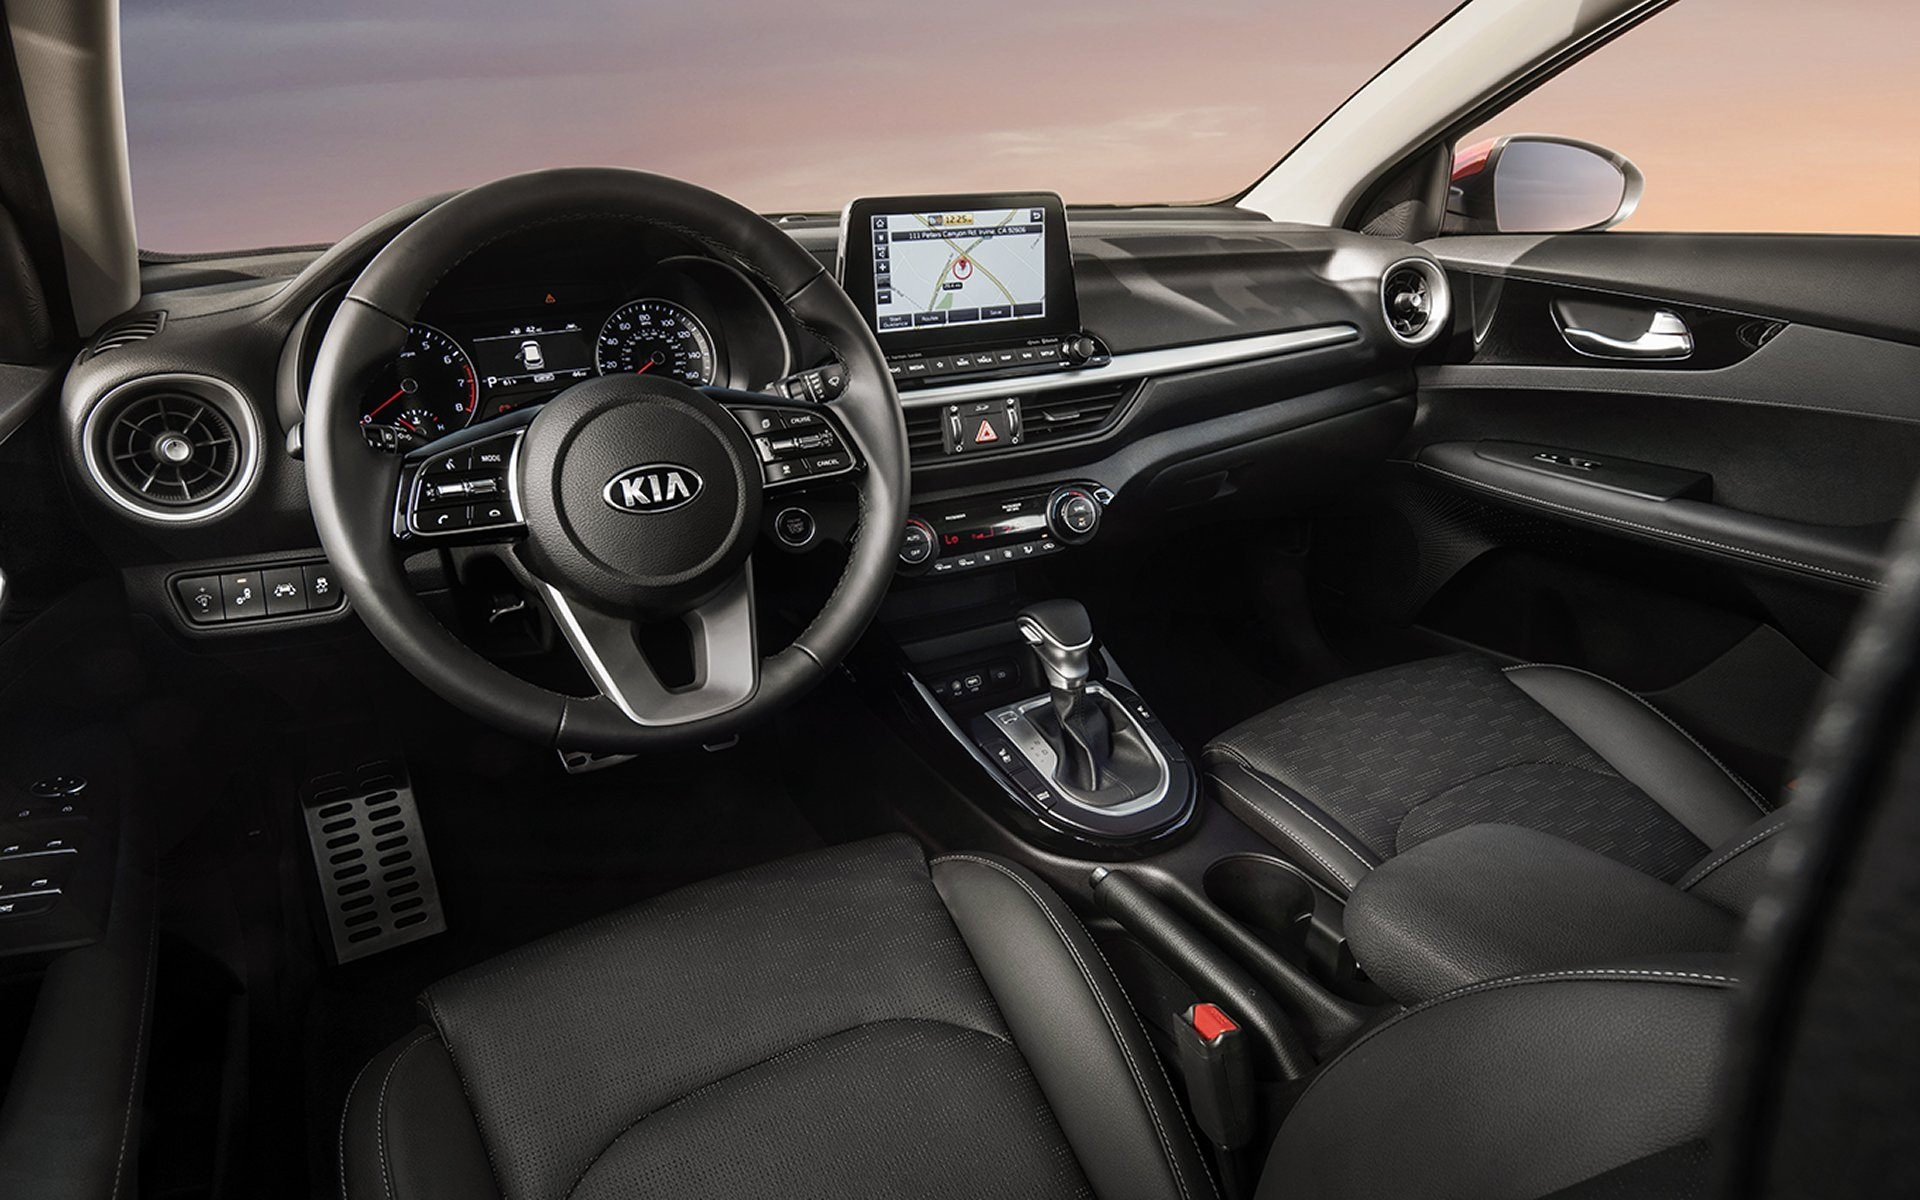 2019 Kia forte black interior